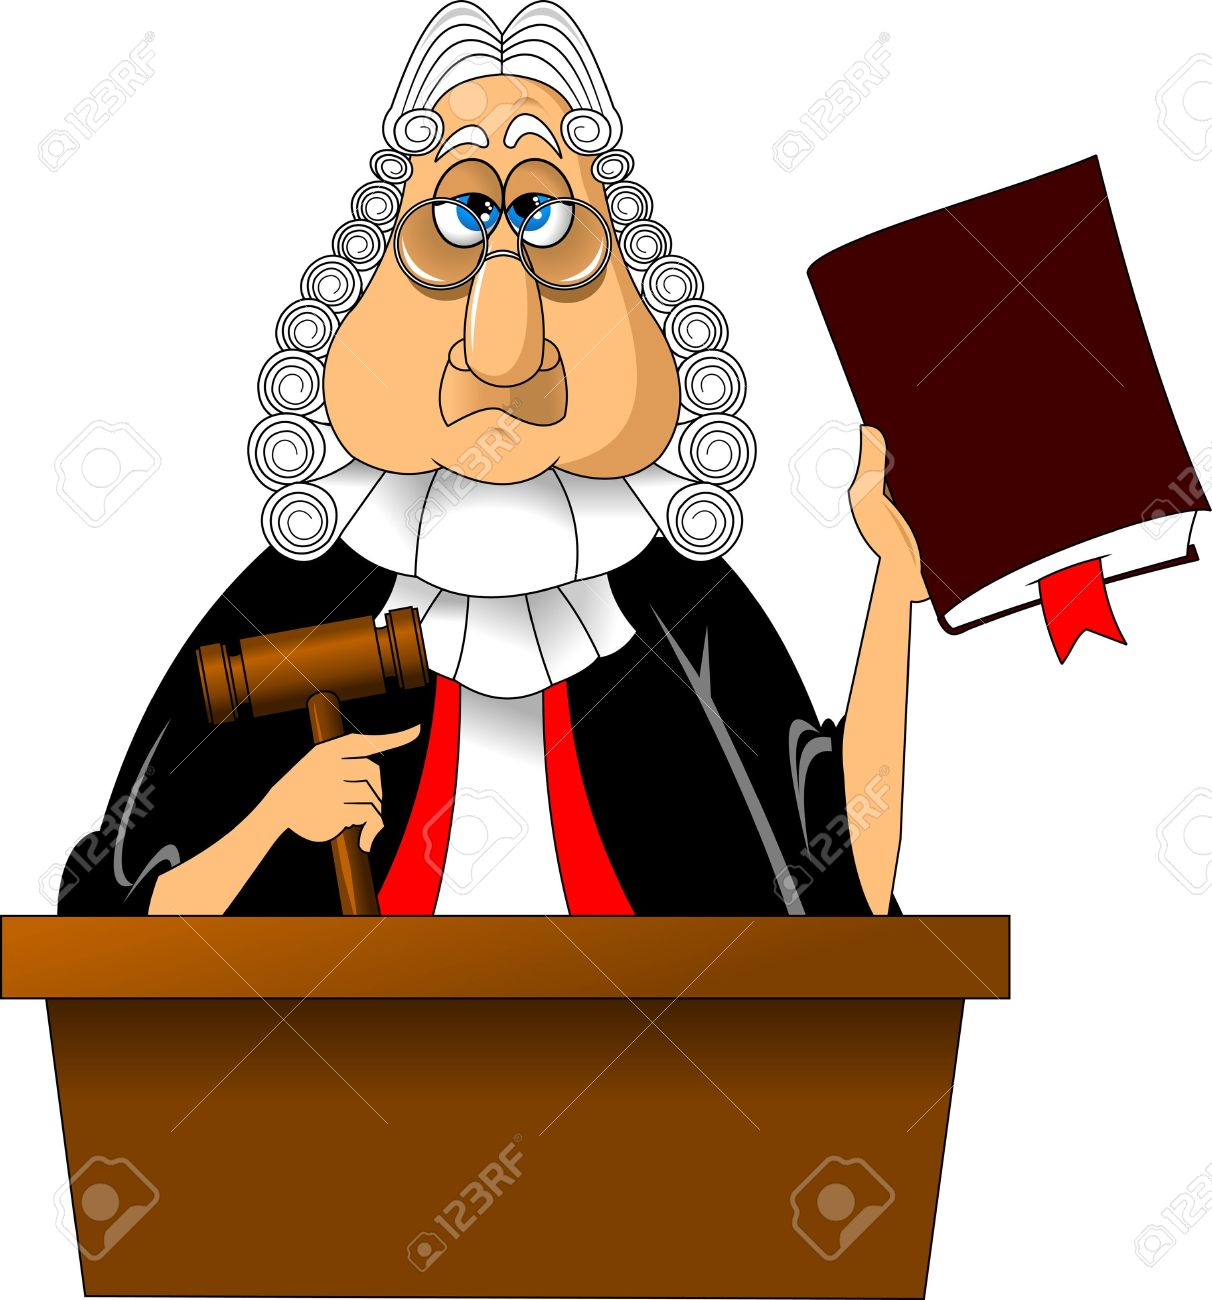 Judge clipart free.